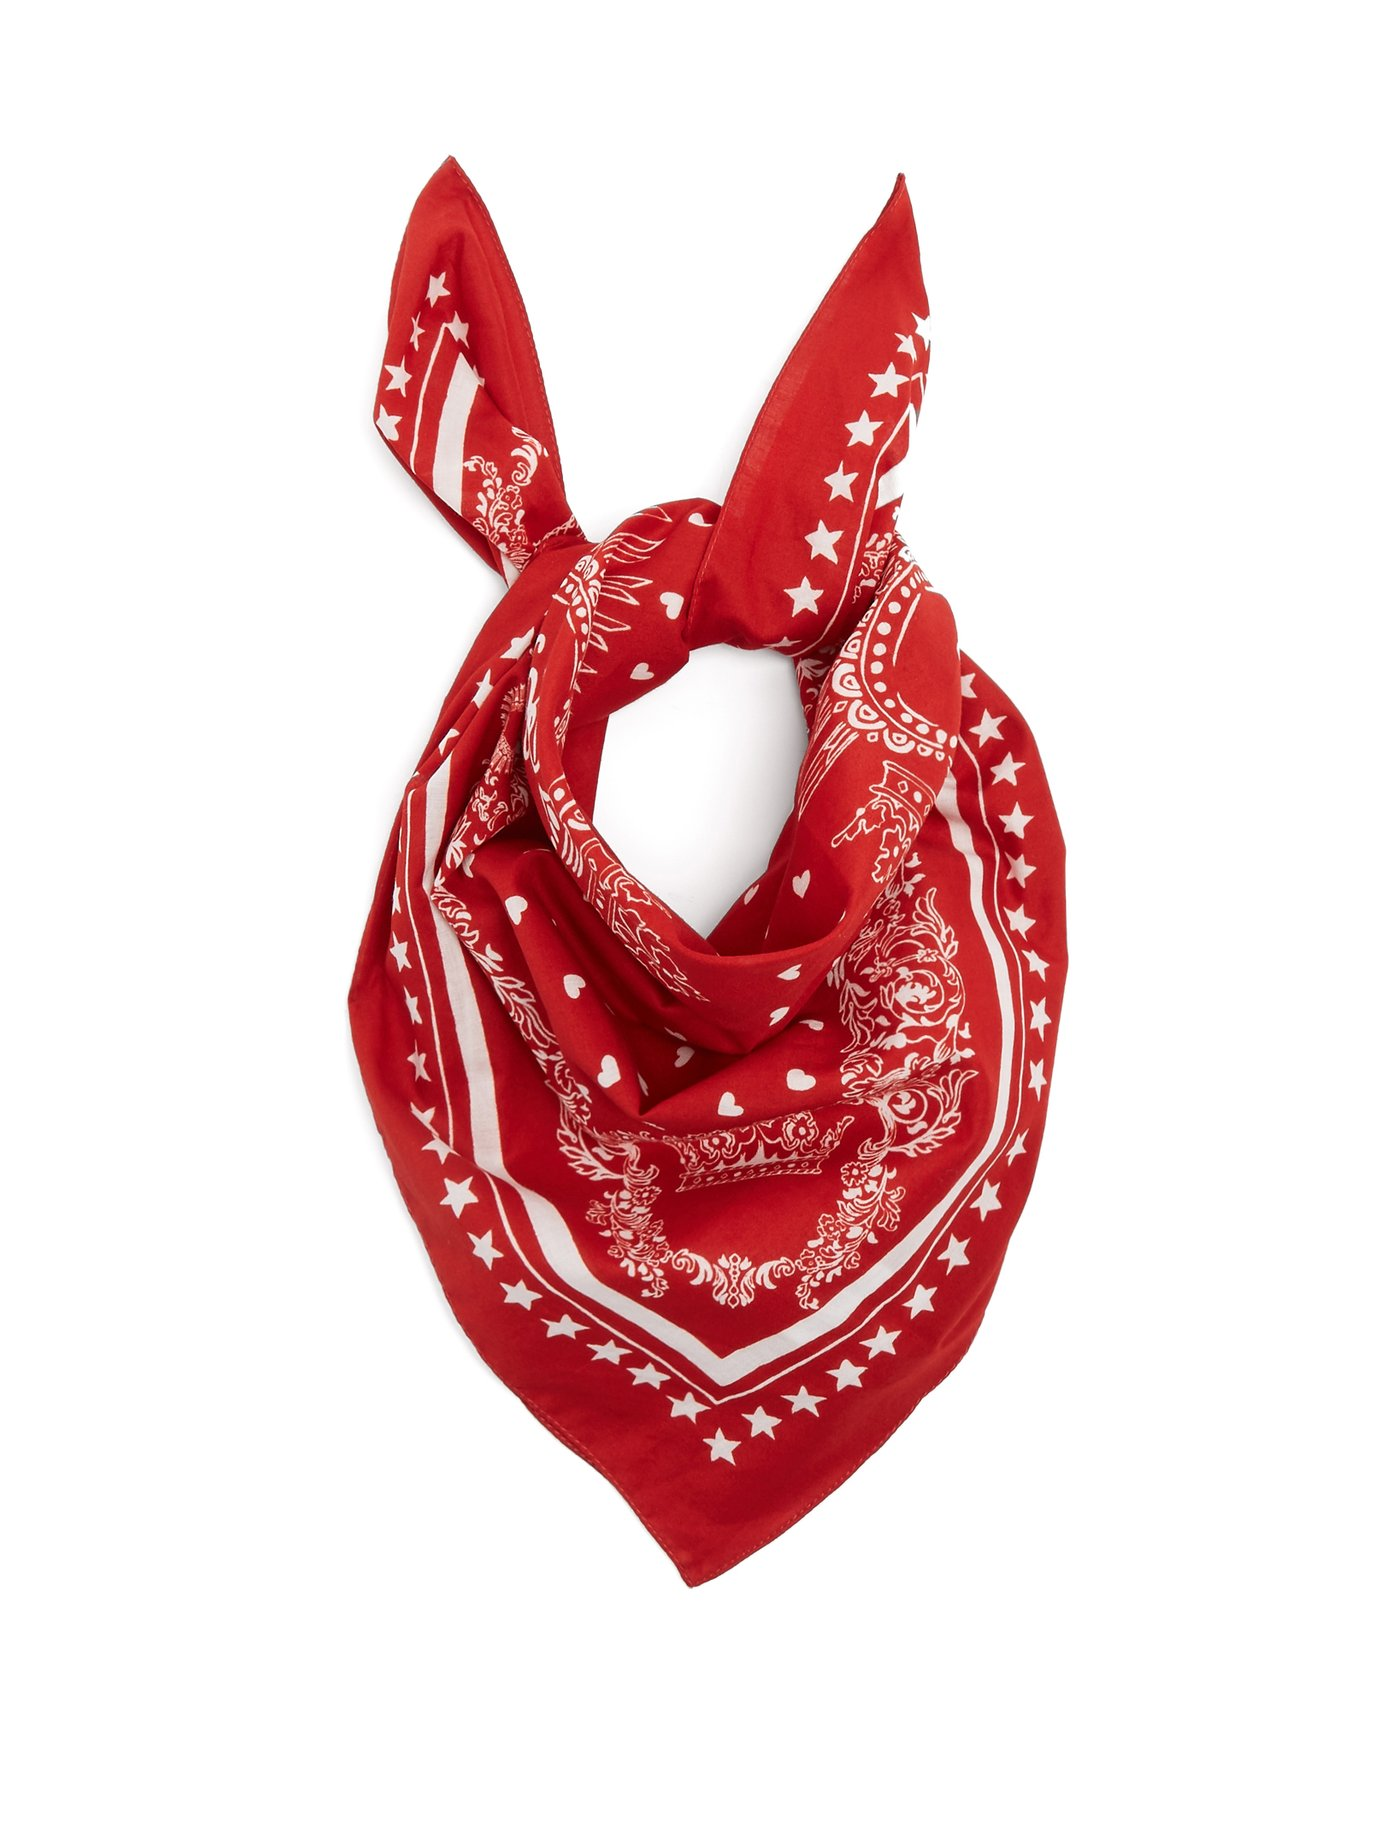 Cotton scarf, £95 by Dolce & Gabbana at Matches